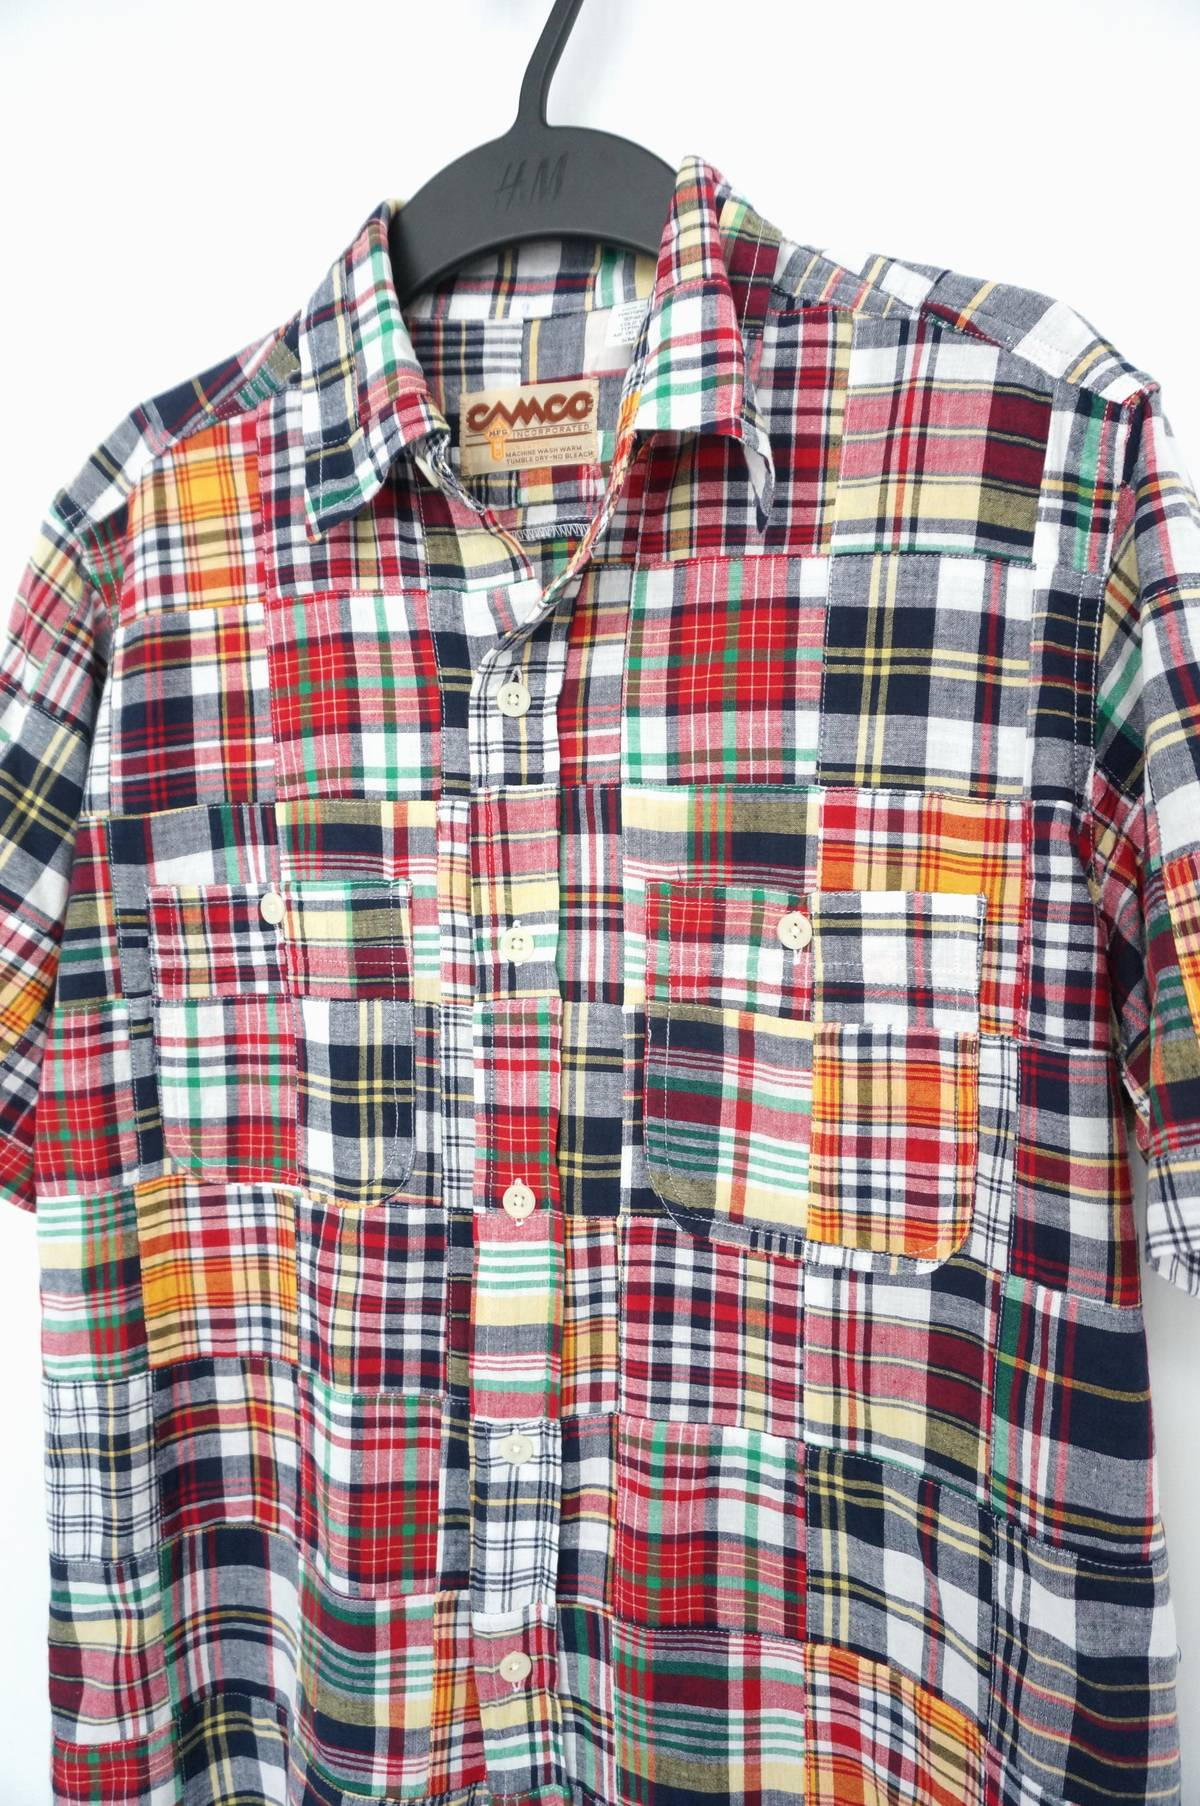 Vintage Camco Mfg Inc Patchwork Short Sleeve Buttons Shirt Grailed